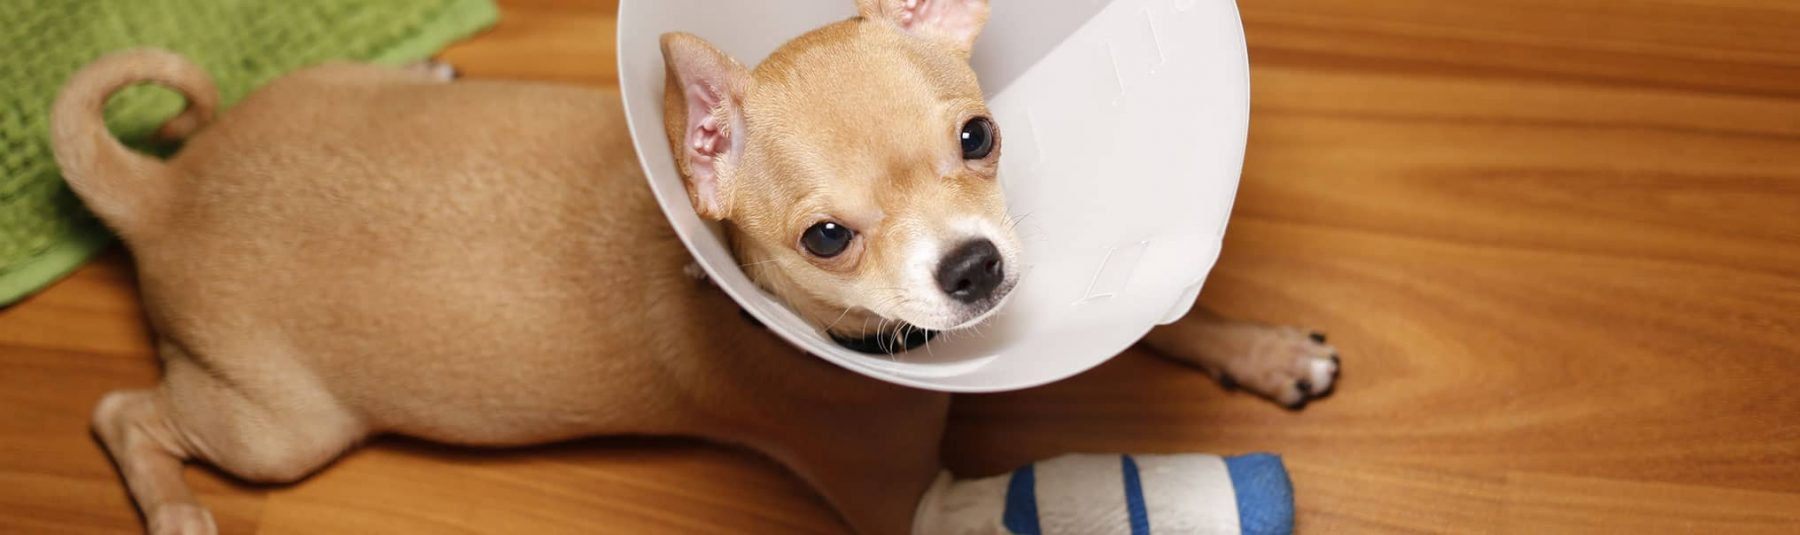 Dog with bandaged arm and wearing a cone